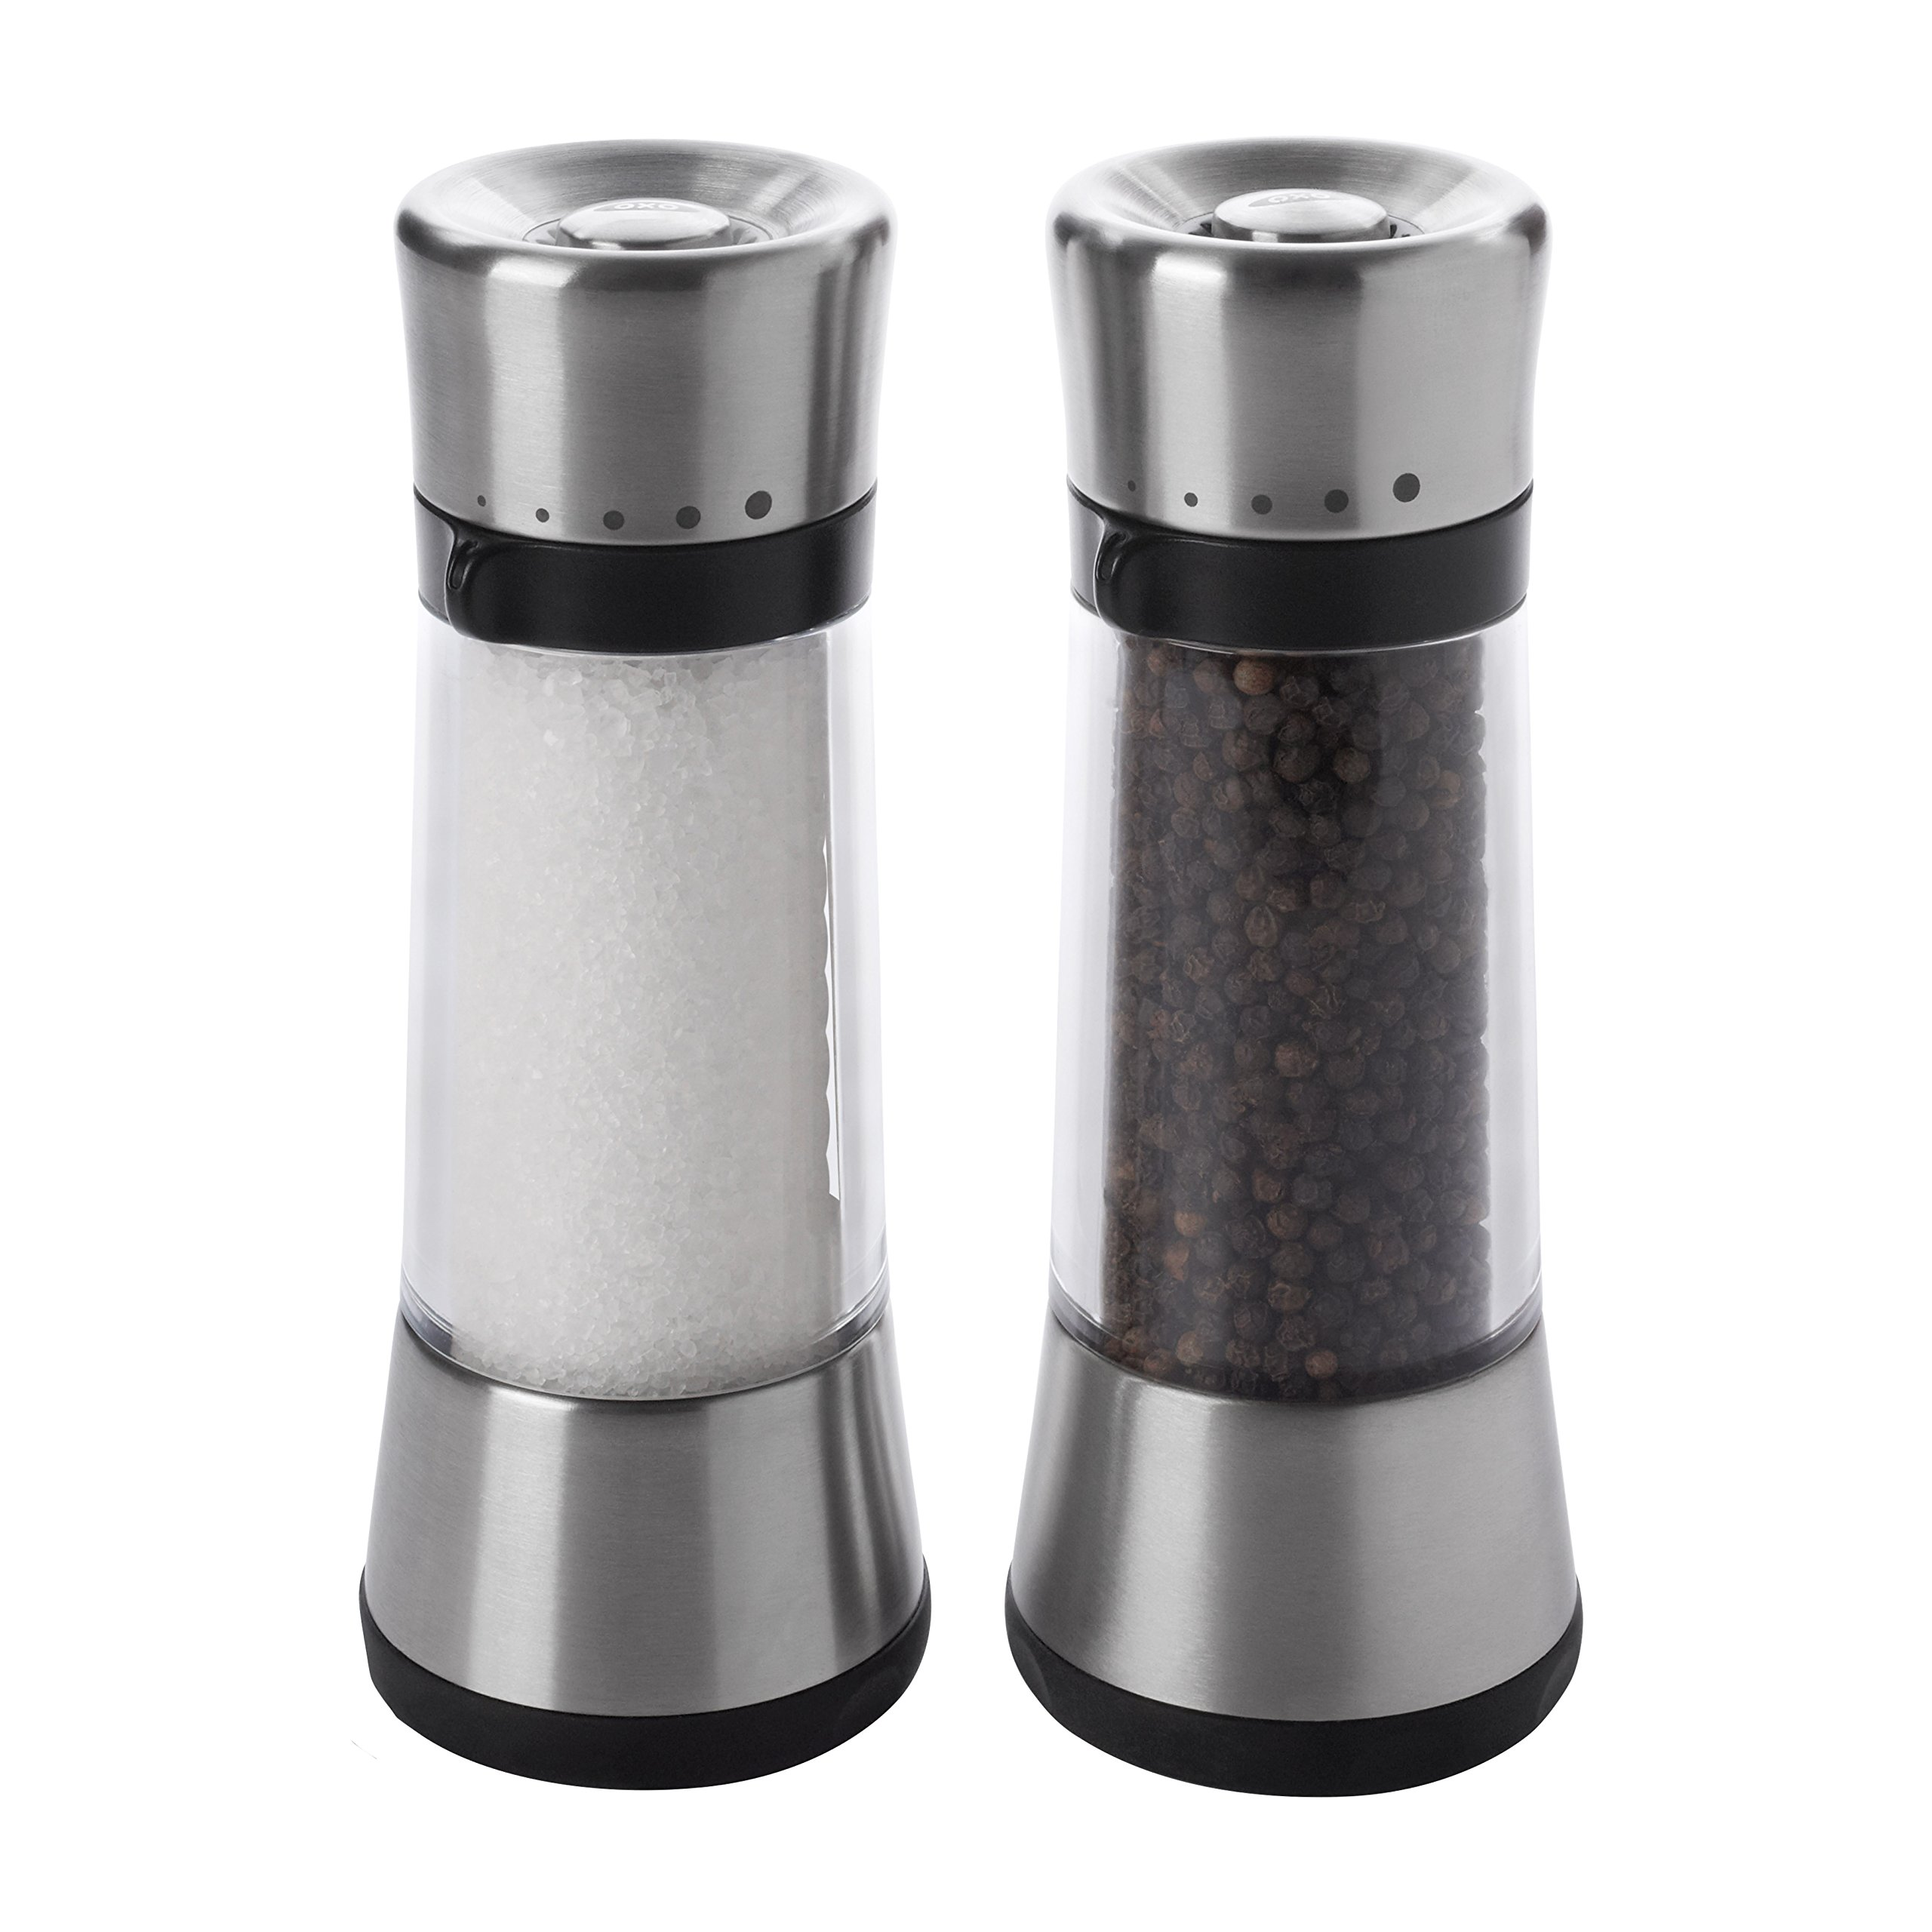 OXO Good Grips Lua Salt and Pepper Mill Set with Adjustable Grind Size